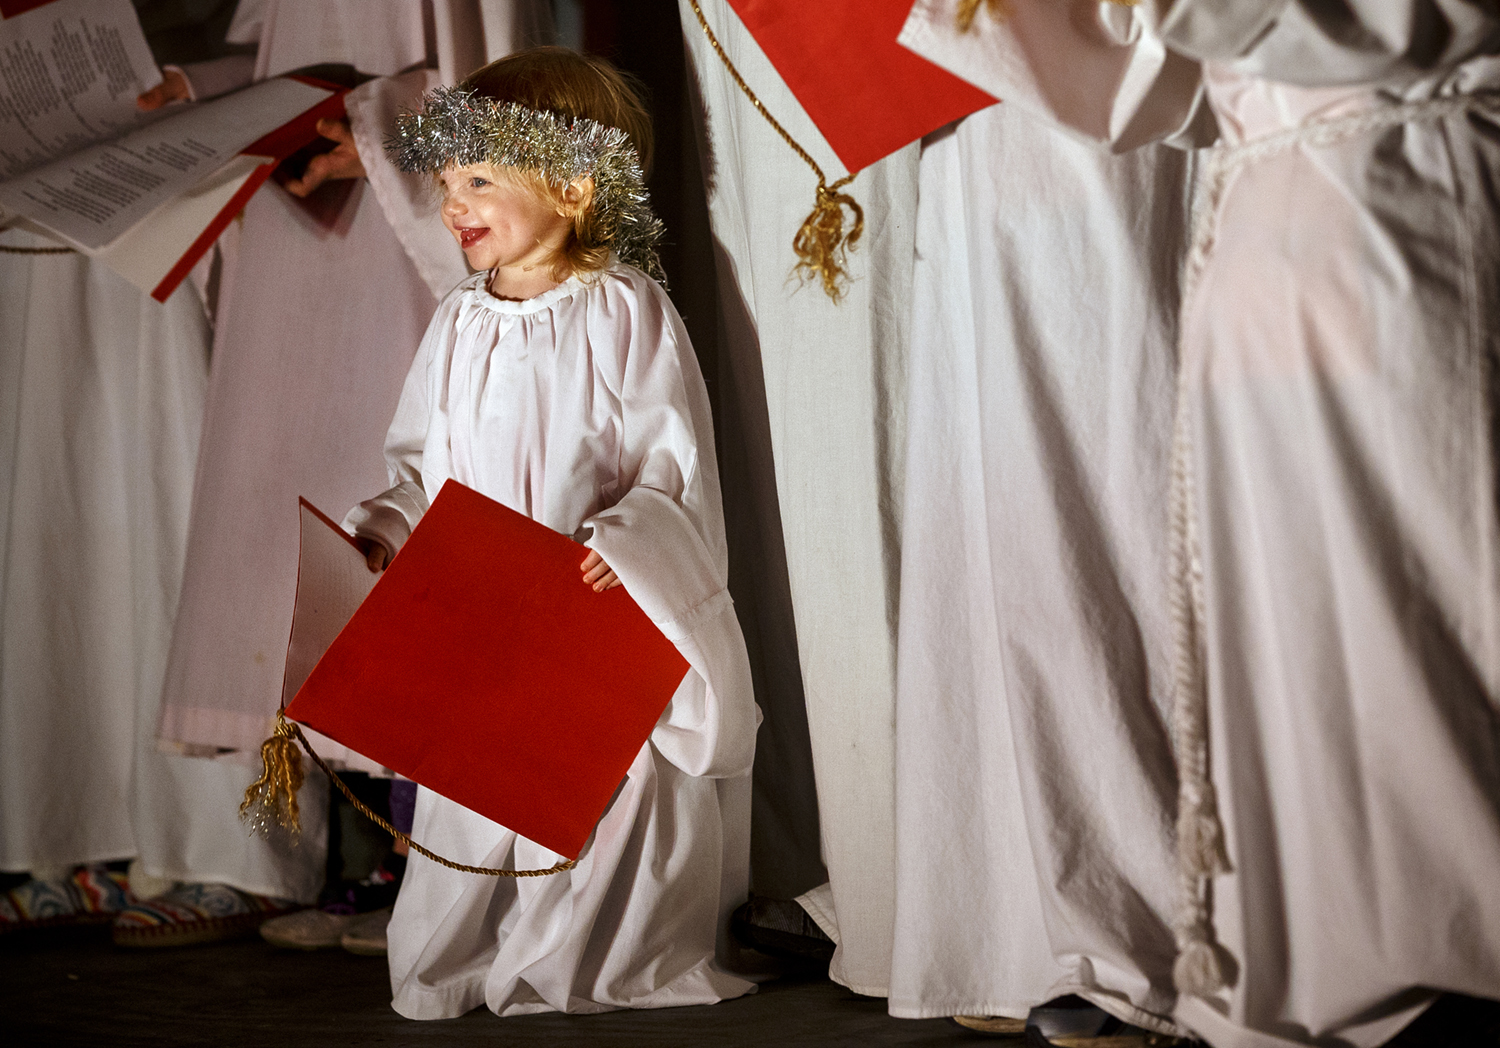 Twenty-two-month-old Sadie Winkelman joined the choir of angels singing at the Our Savior's Lutheran Church and School's annual Live Nativity Friday, Dec. 11, 2015. The free drive-through event features holiday lights, a choir of angels, period-dressed actors, and live animals and continues Saturday, Dec. 12 from 7-9 p.m. Ted Schurter/The State Journal-Register